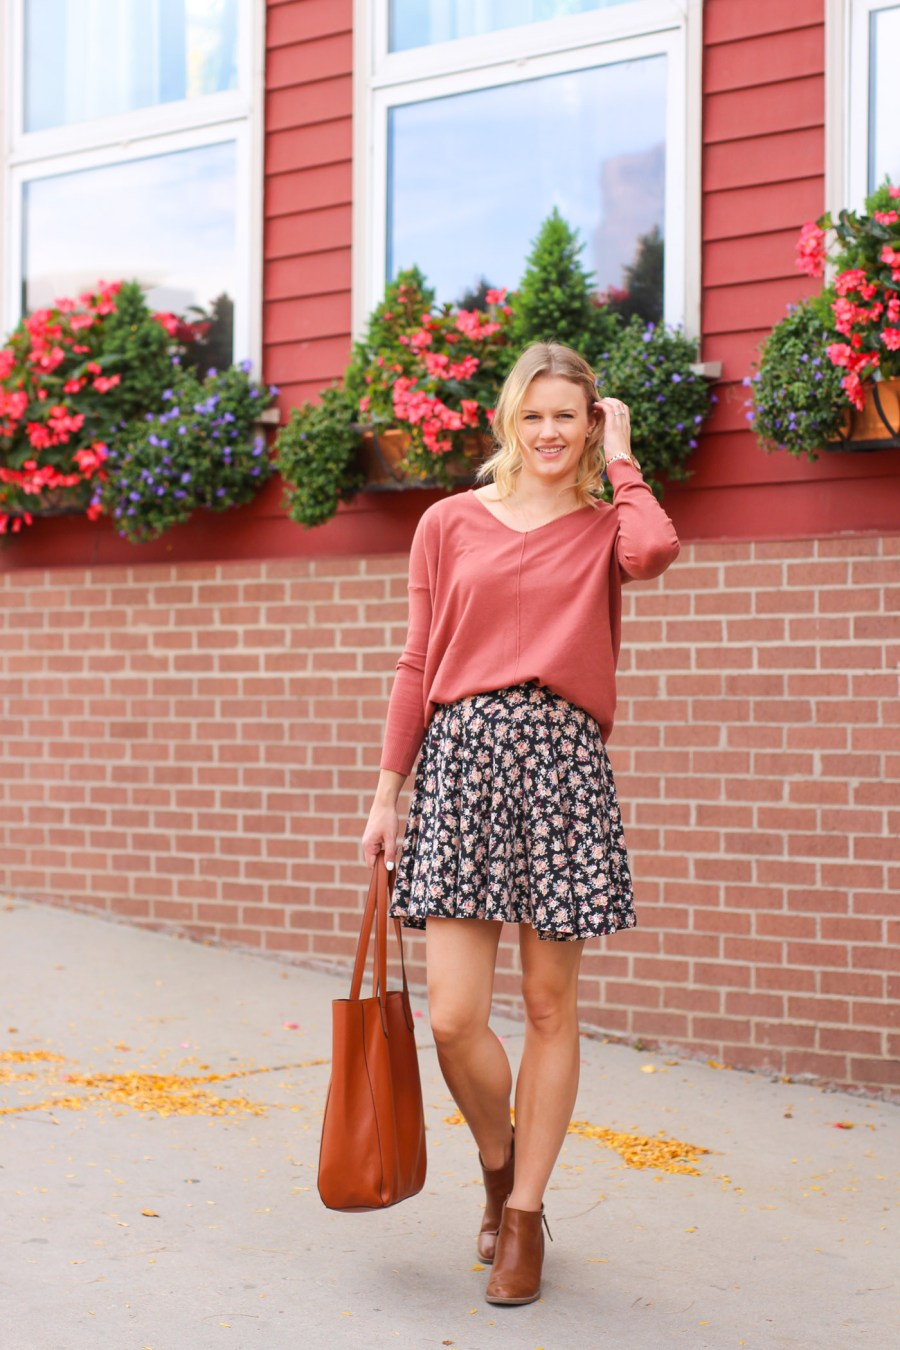 fashion blog, fall outfit, fall fashion, fashion blog, Treats and Trends, Jamie Kamber, Pinterest Outfit